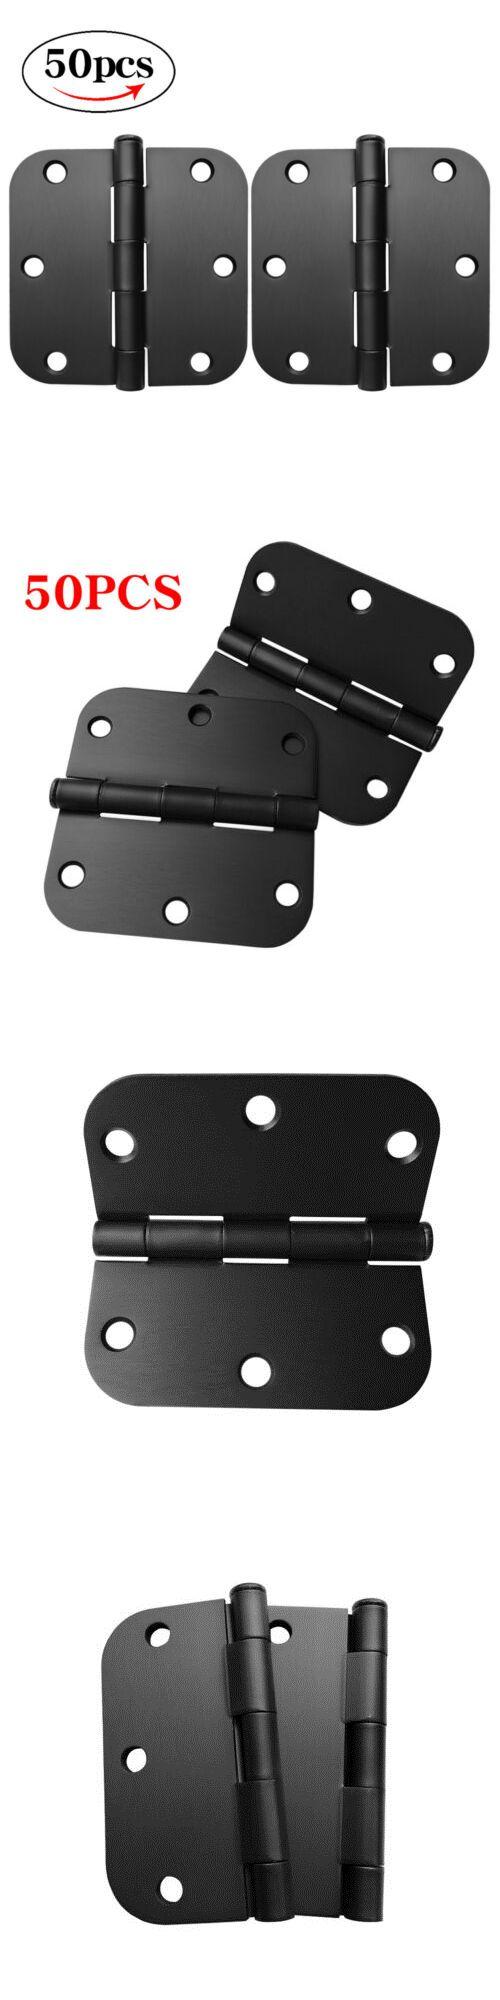 Door Hinges 66739 50pc Black 3 5 3 5 Round Corner Door Hinge Removable Pin Screws 5 8 Radius Buy It Now Only 45 98 On Ebay Corner Door Interior Door Hinges Door Hinges